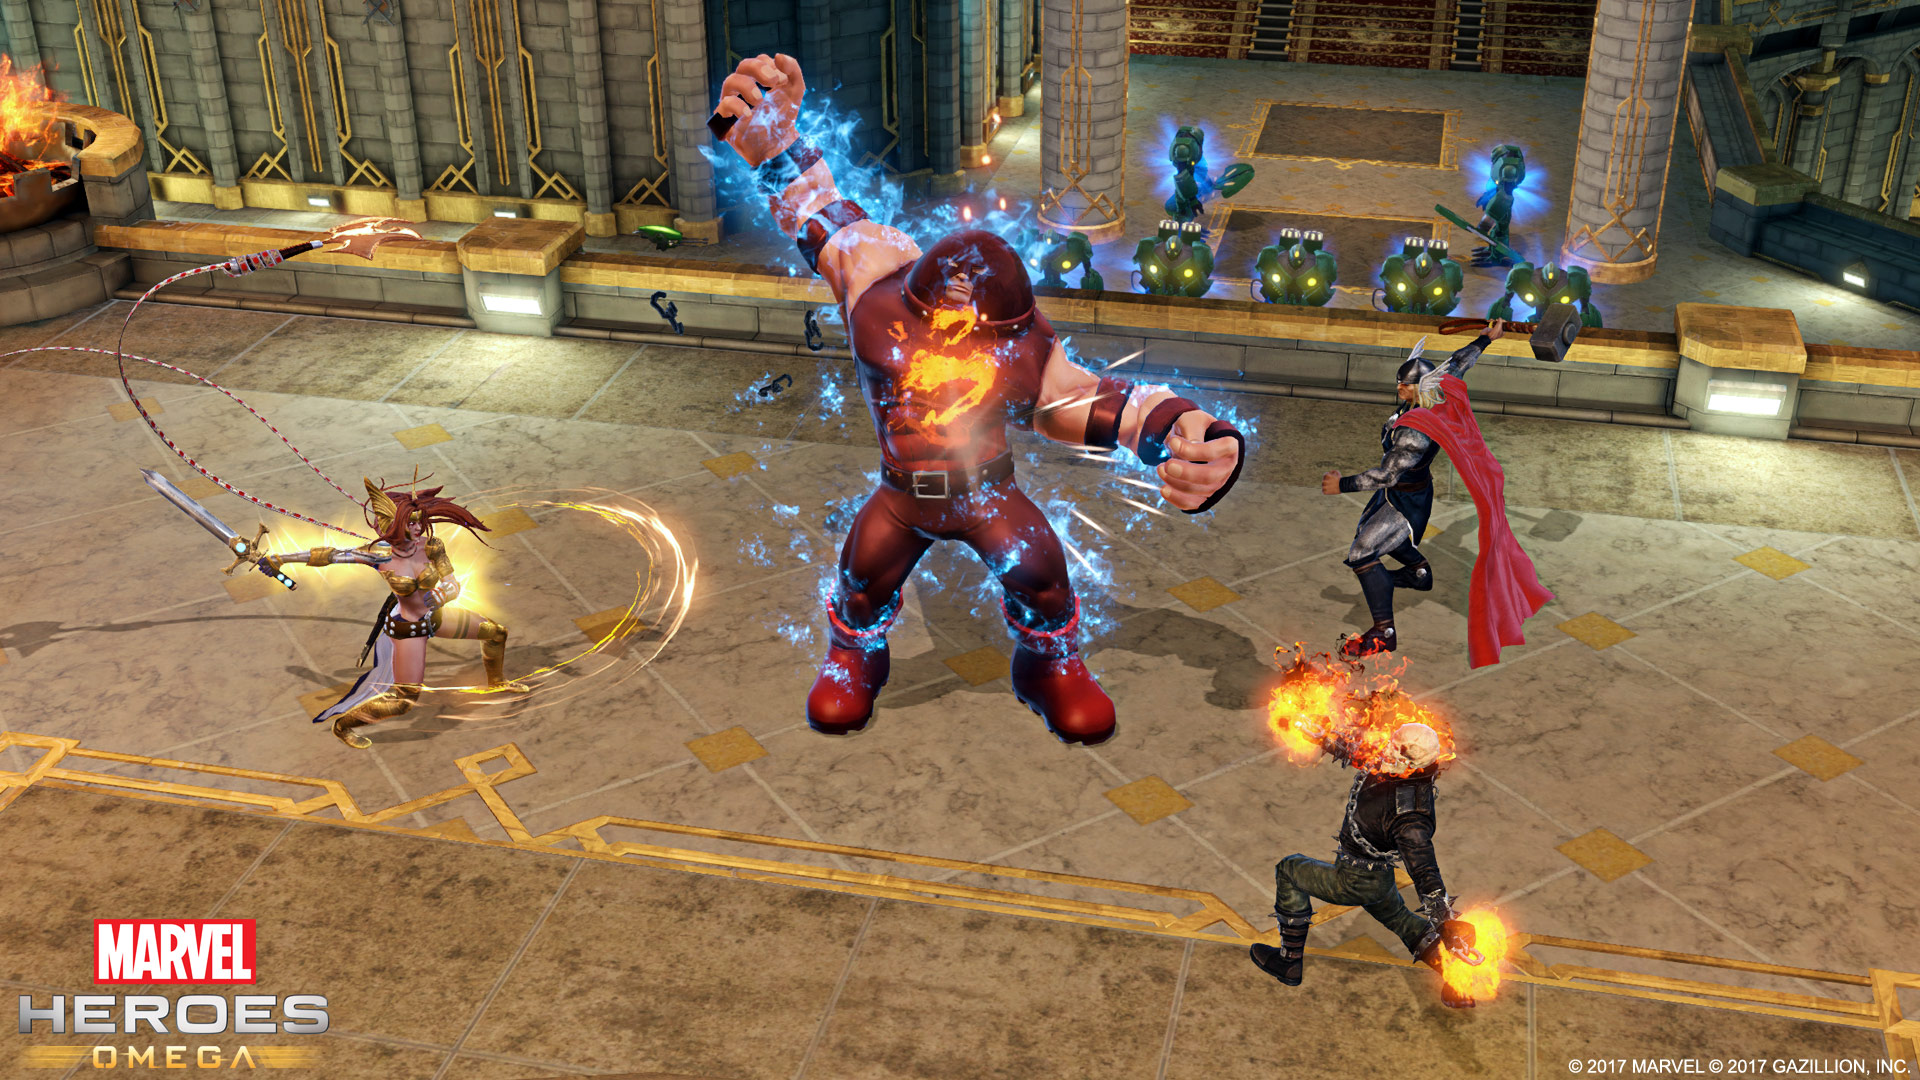 marvel heroes mmo download